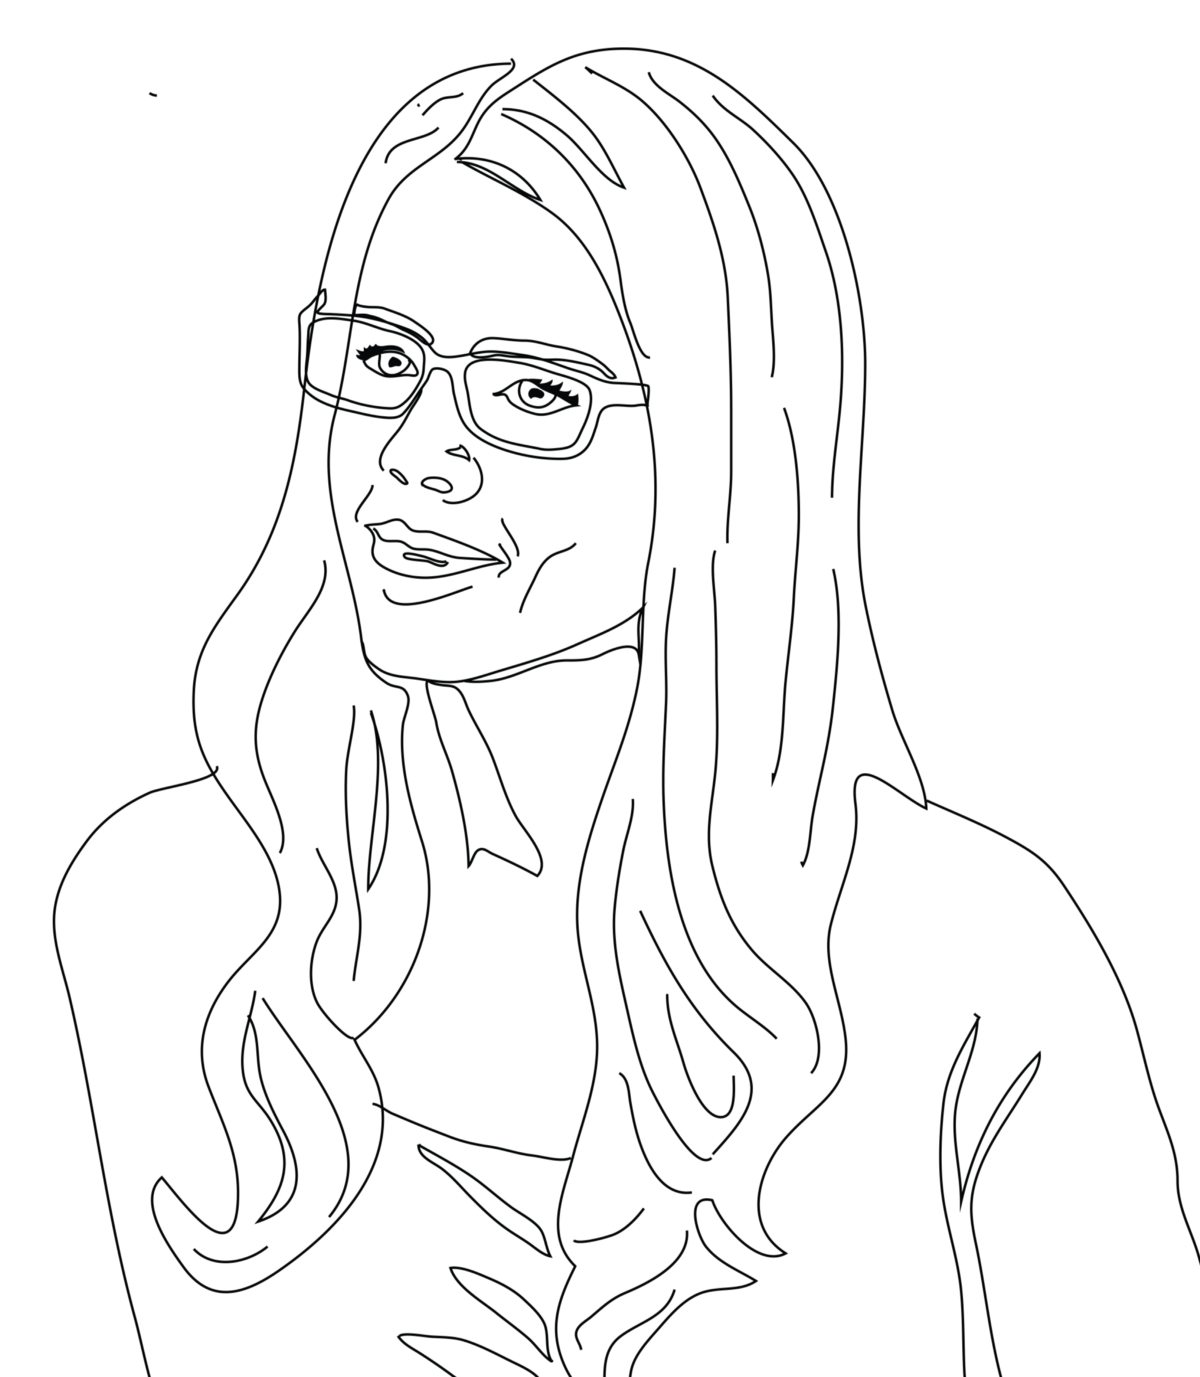 Why Felicity Smoak Is Important For Women And The STEM Field